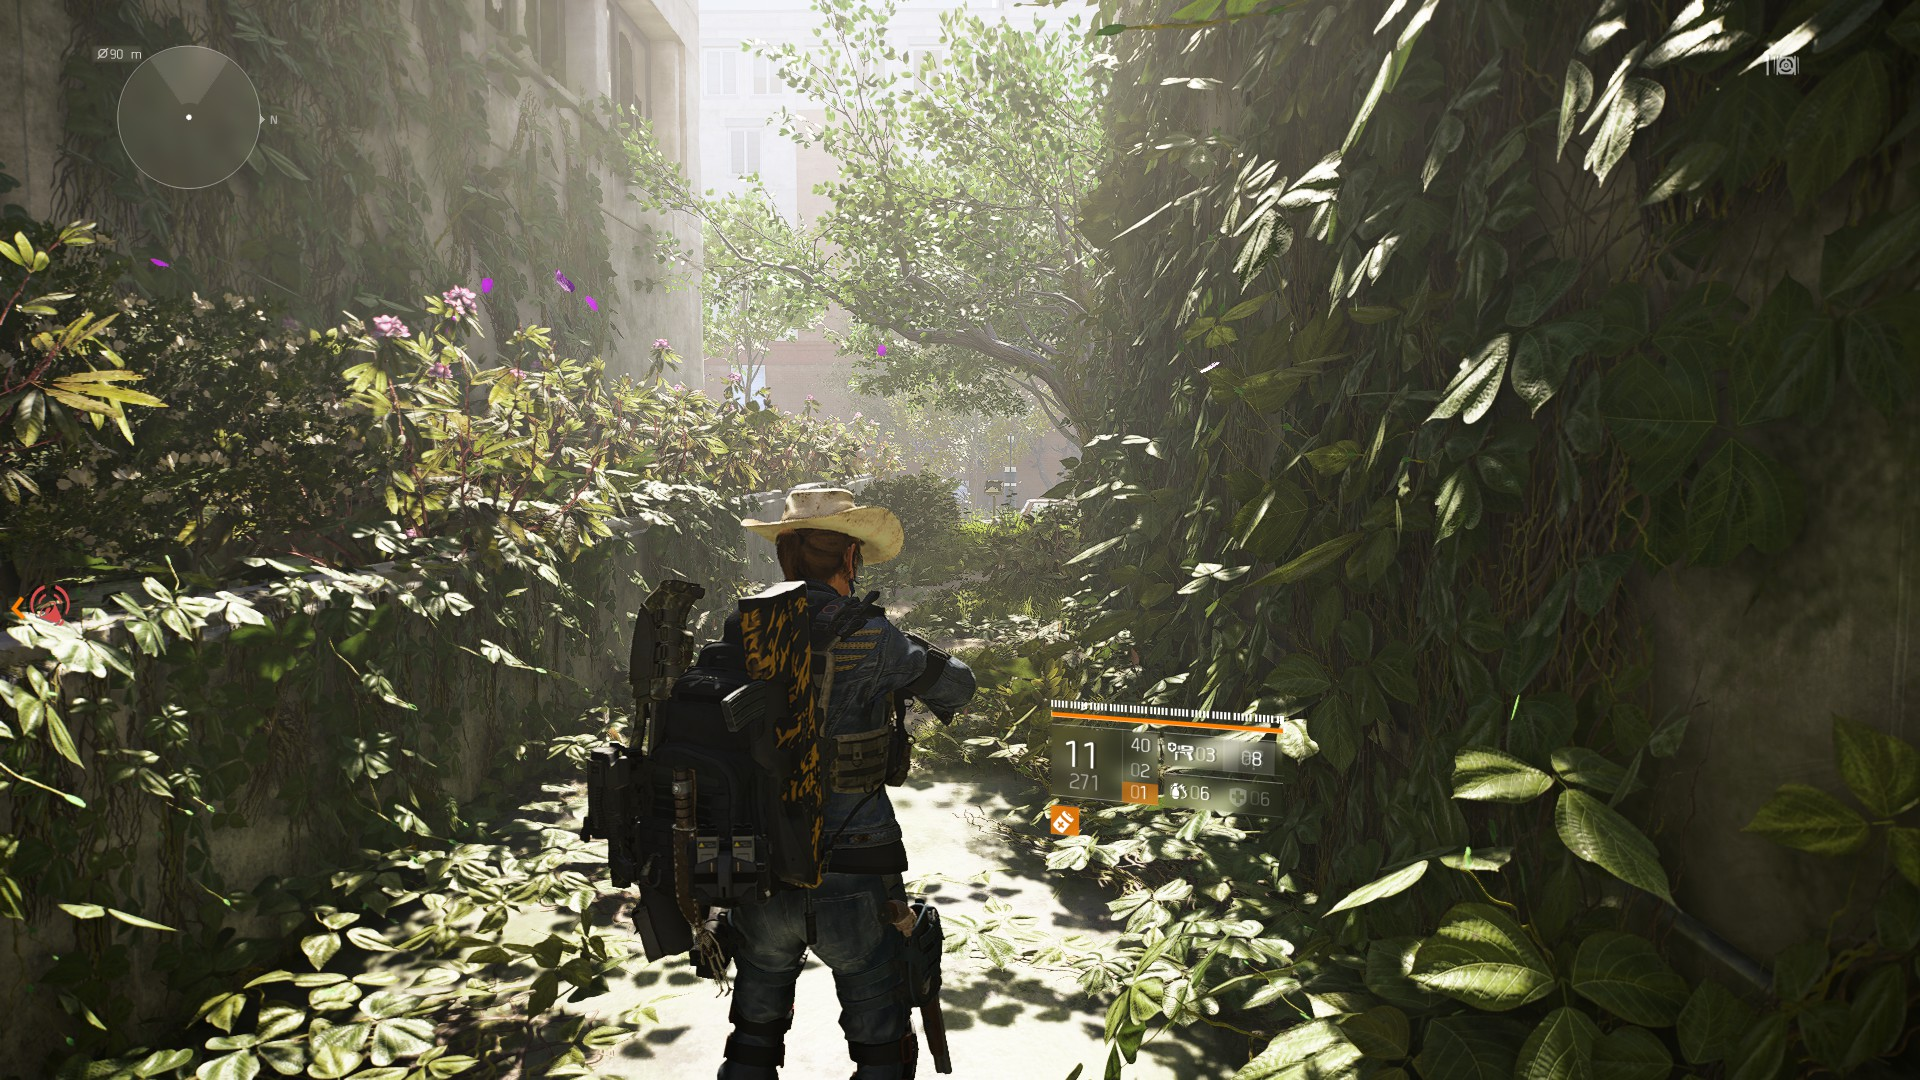 Tom Clancy's The Division® 22019-5-16-4-0-43.jpg